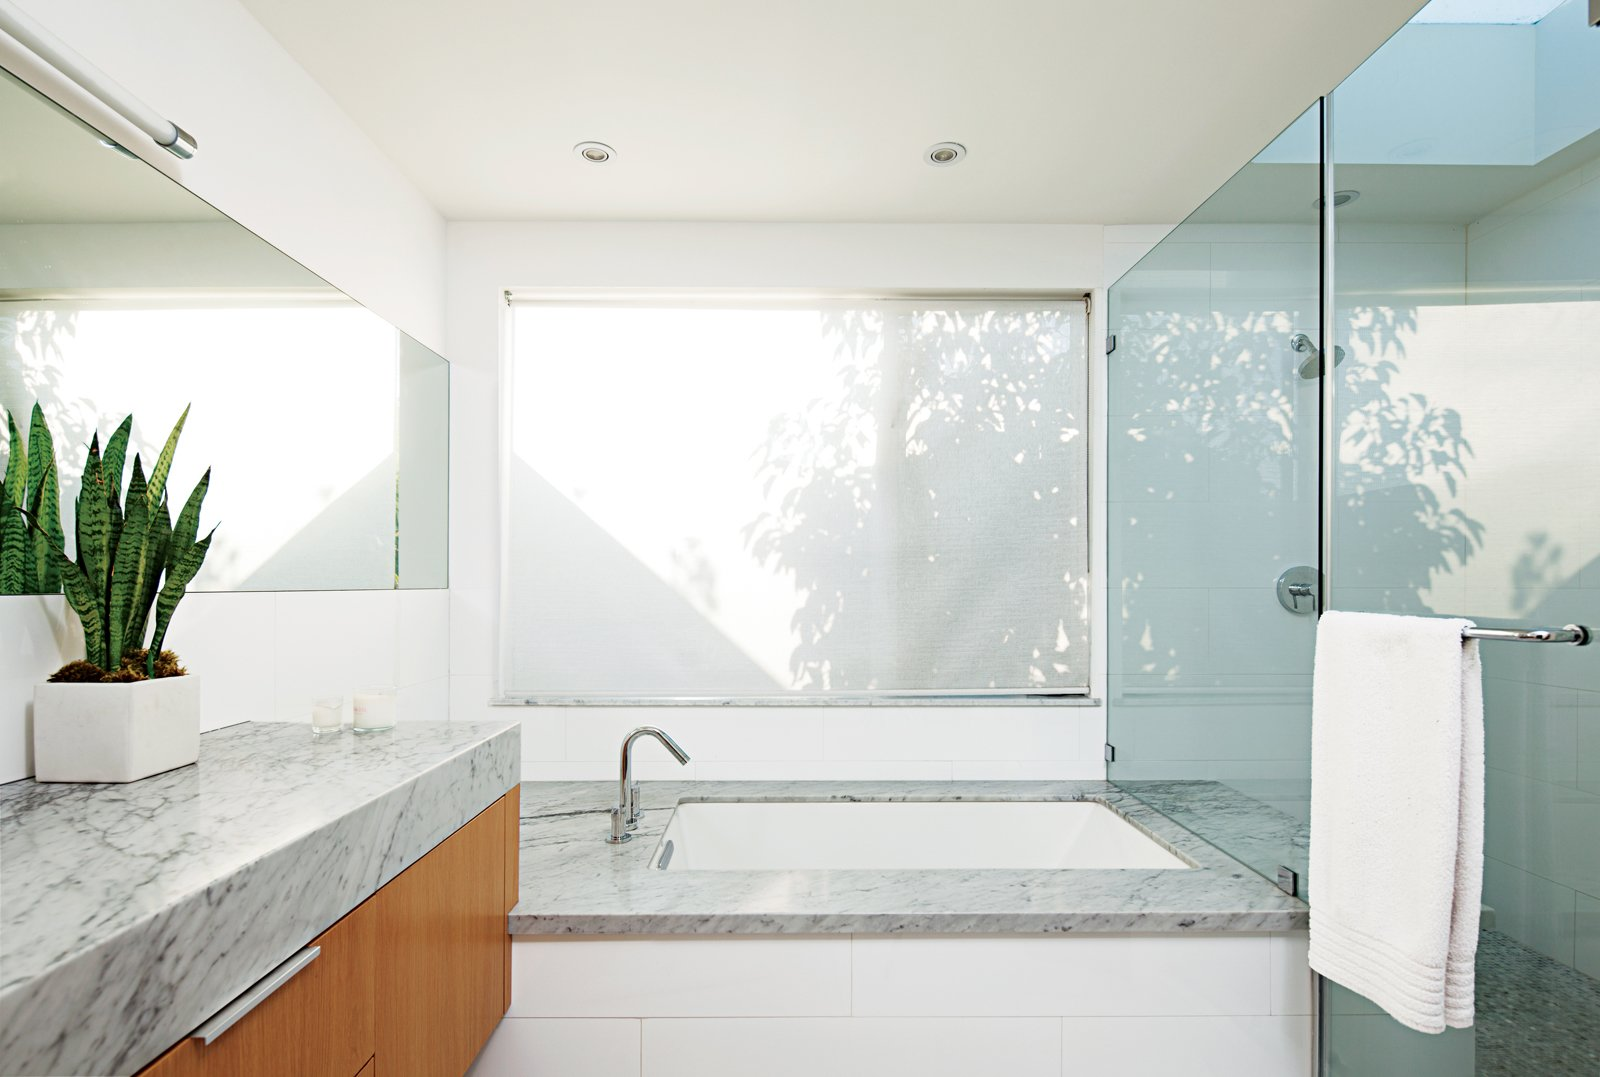 Articles about 12 tips tiny bathrooms on Dwell.com - Dwell